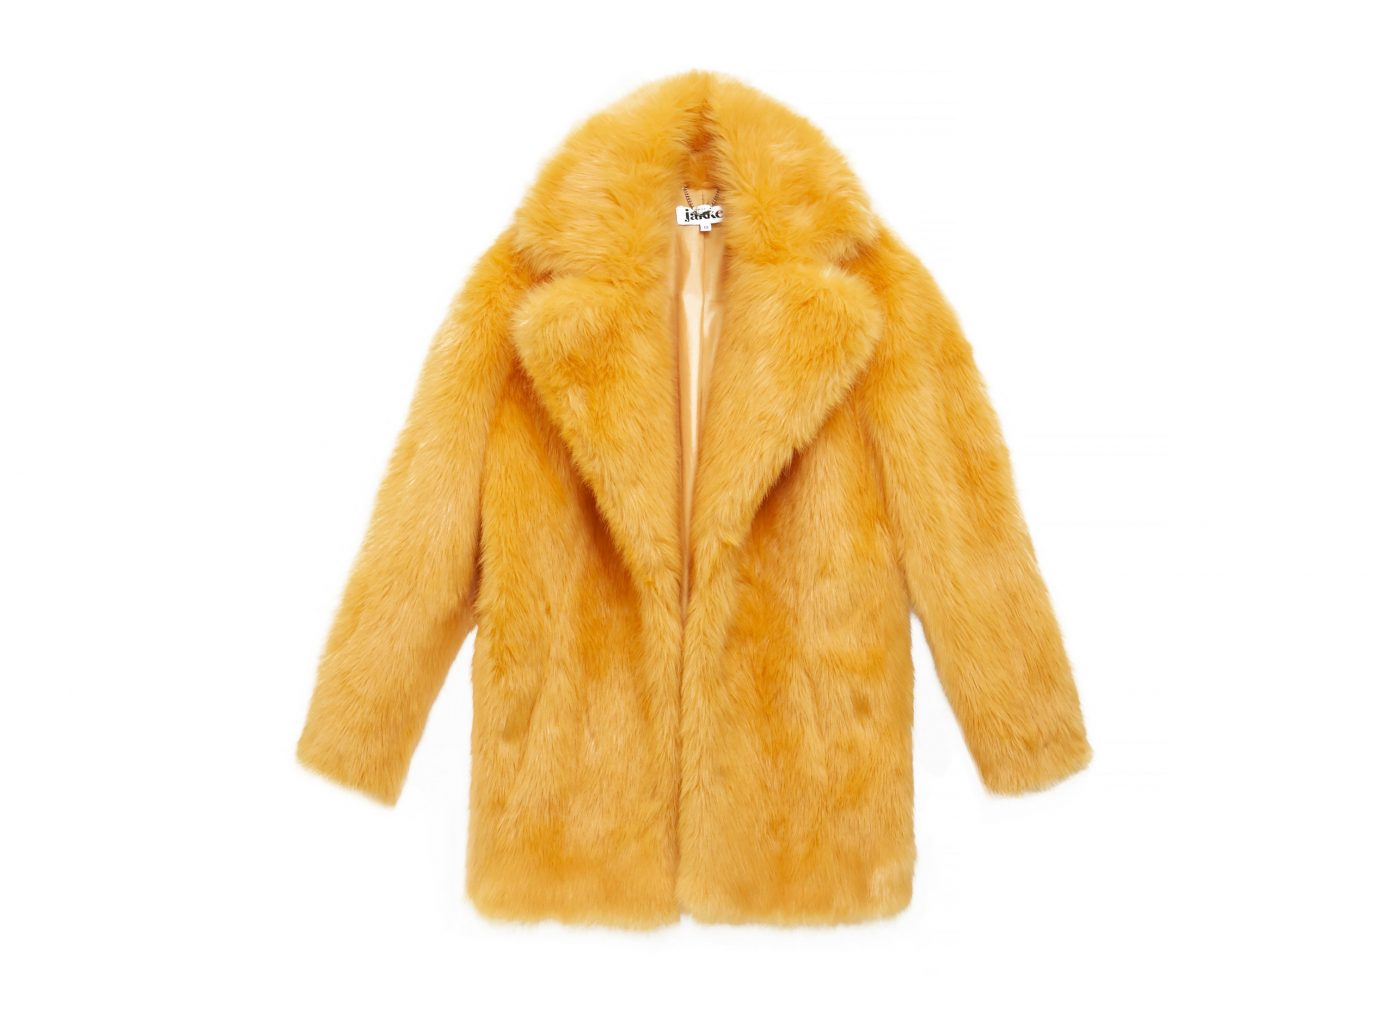 Style + Design coat clothing fur clothing fur yellow outerwear textile leather material orange